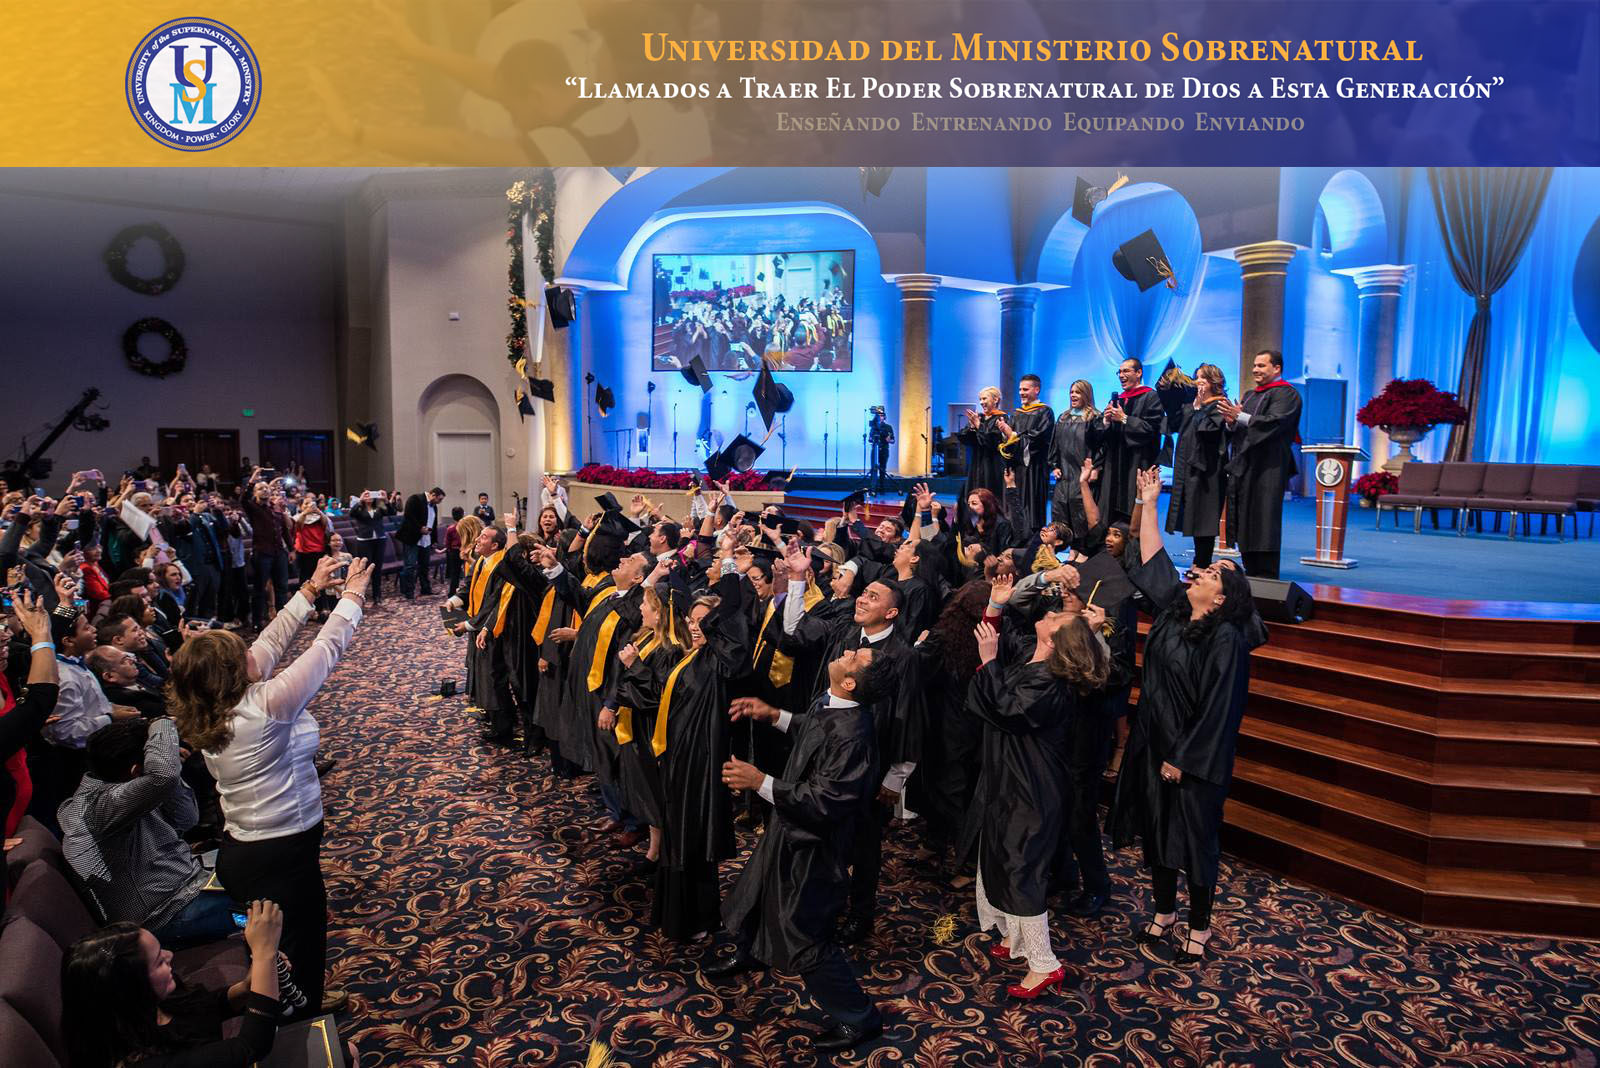 University of the Supernatural Ministry